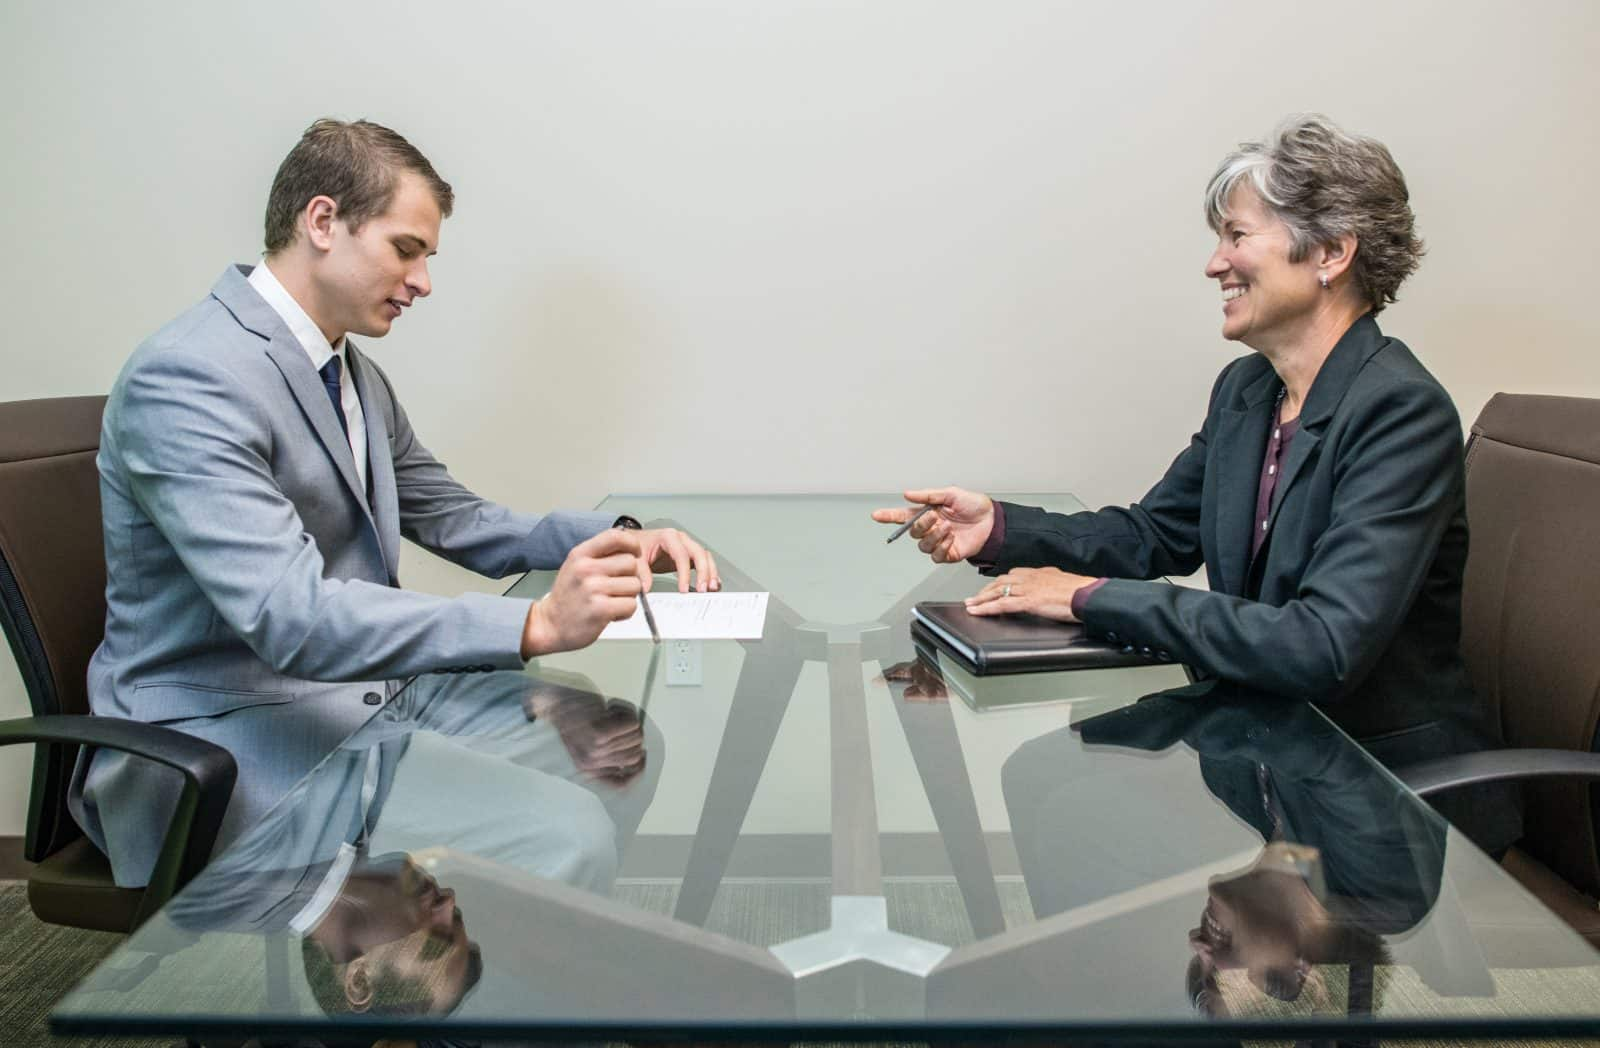 Young man during an interview with a woman